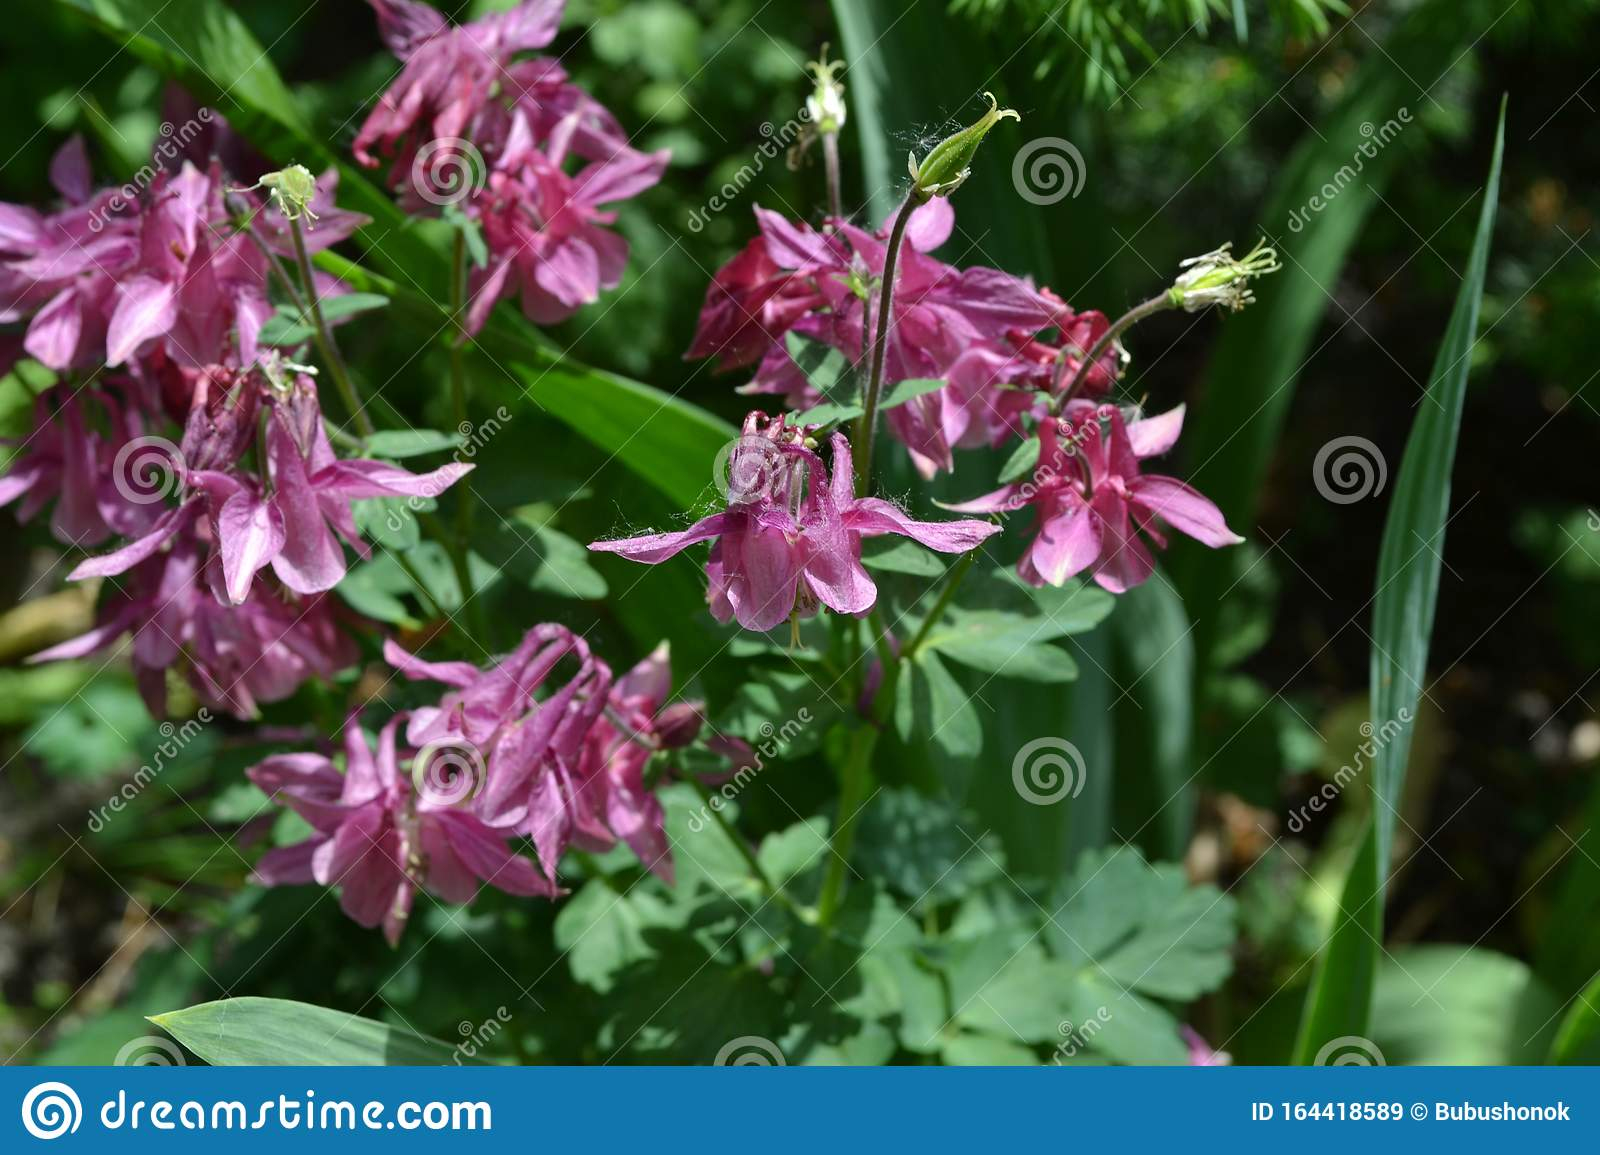 Green Bushes Branches Aquilegia Grassy Perennial Plants Of The